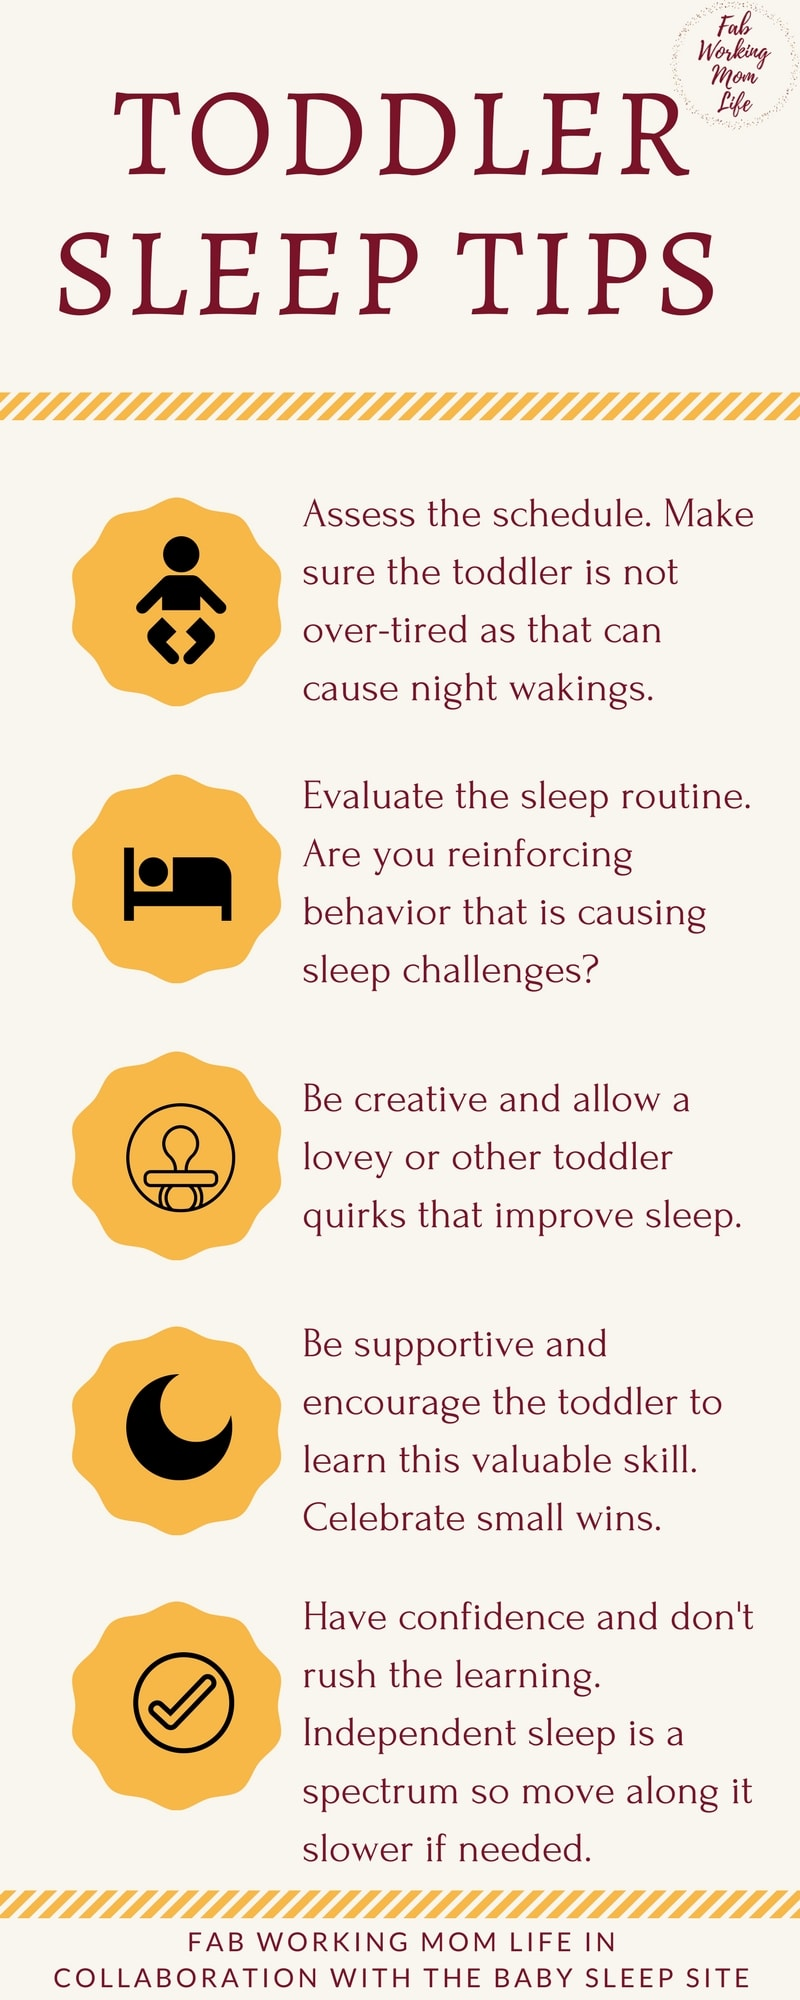 Toddler Sleep Tips | Dealing with Toddler Separation Anxiety at Night | Tips from The Baby Sleep Site